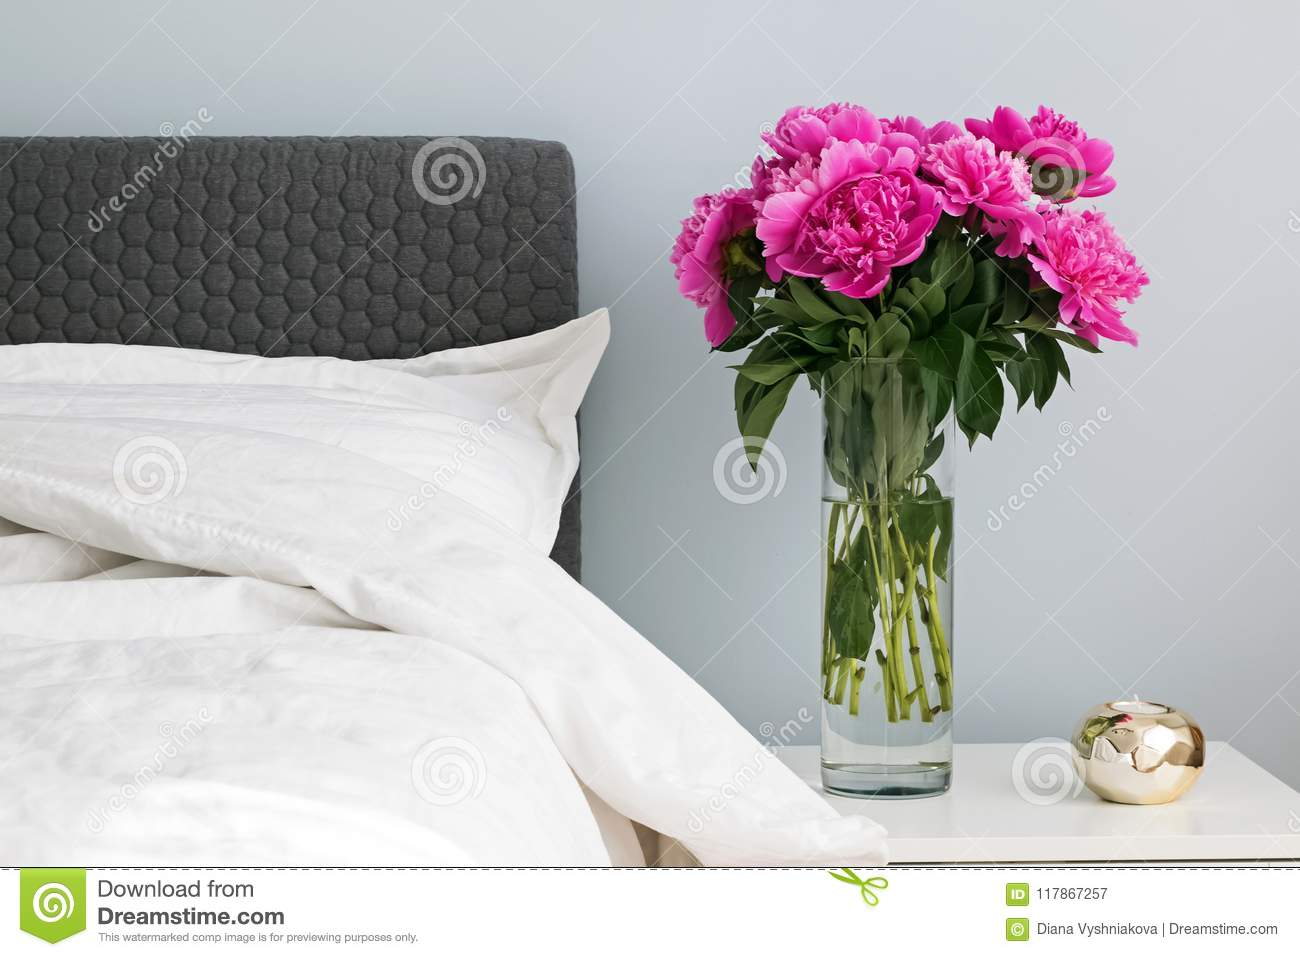 Bed With White Bed Sheets And Pink Peonies On The Nightstand ...